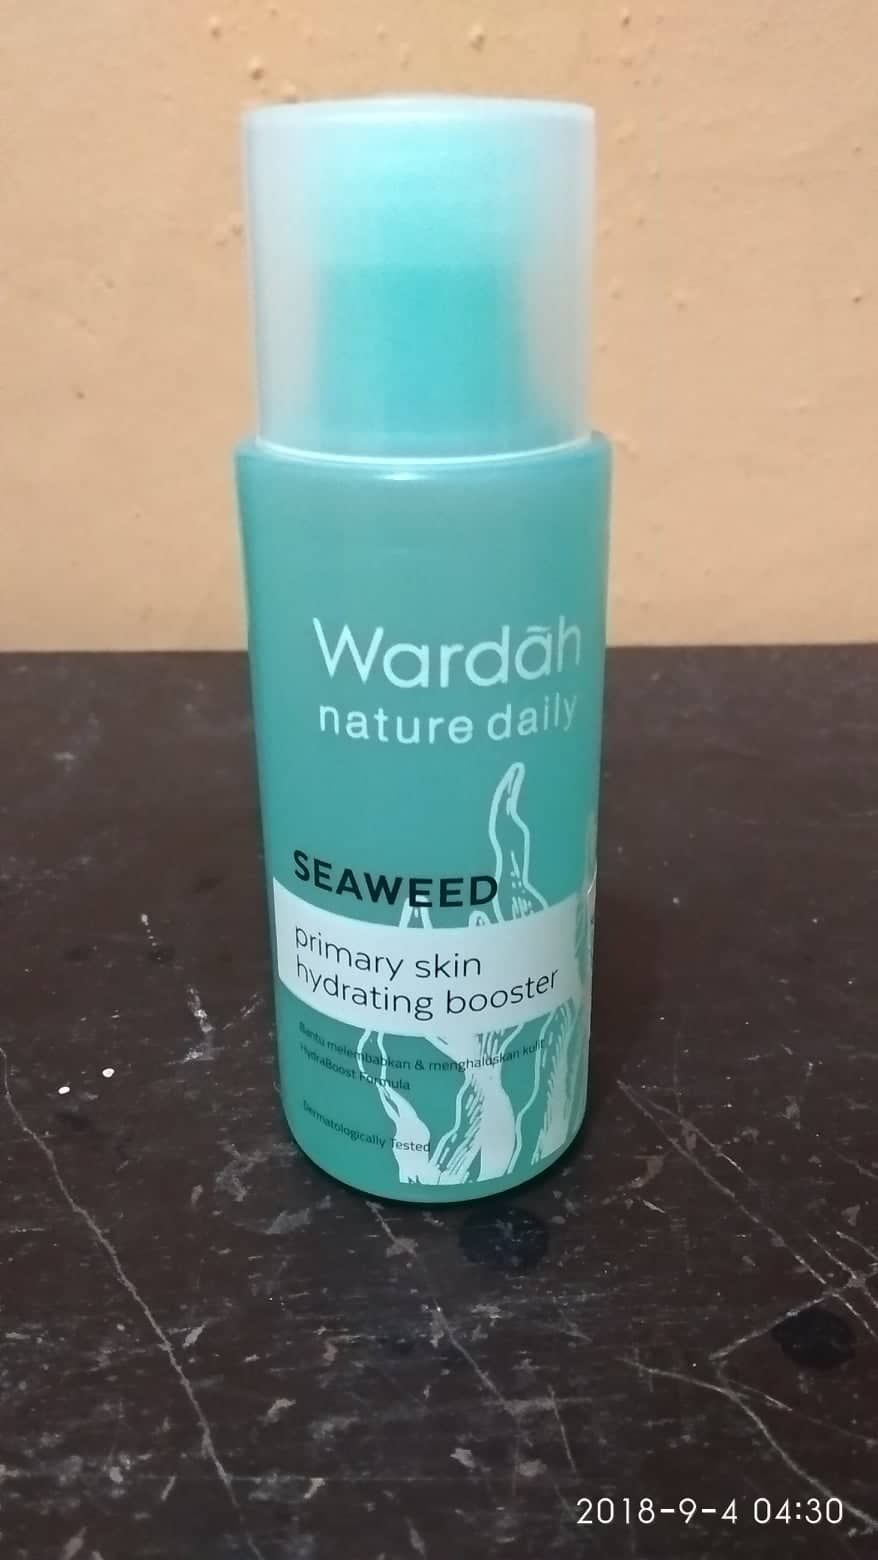 Review WARDAH Nature Daily Seaweed Primary Skin Hydrating